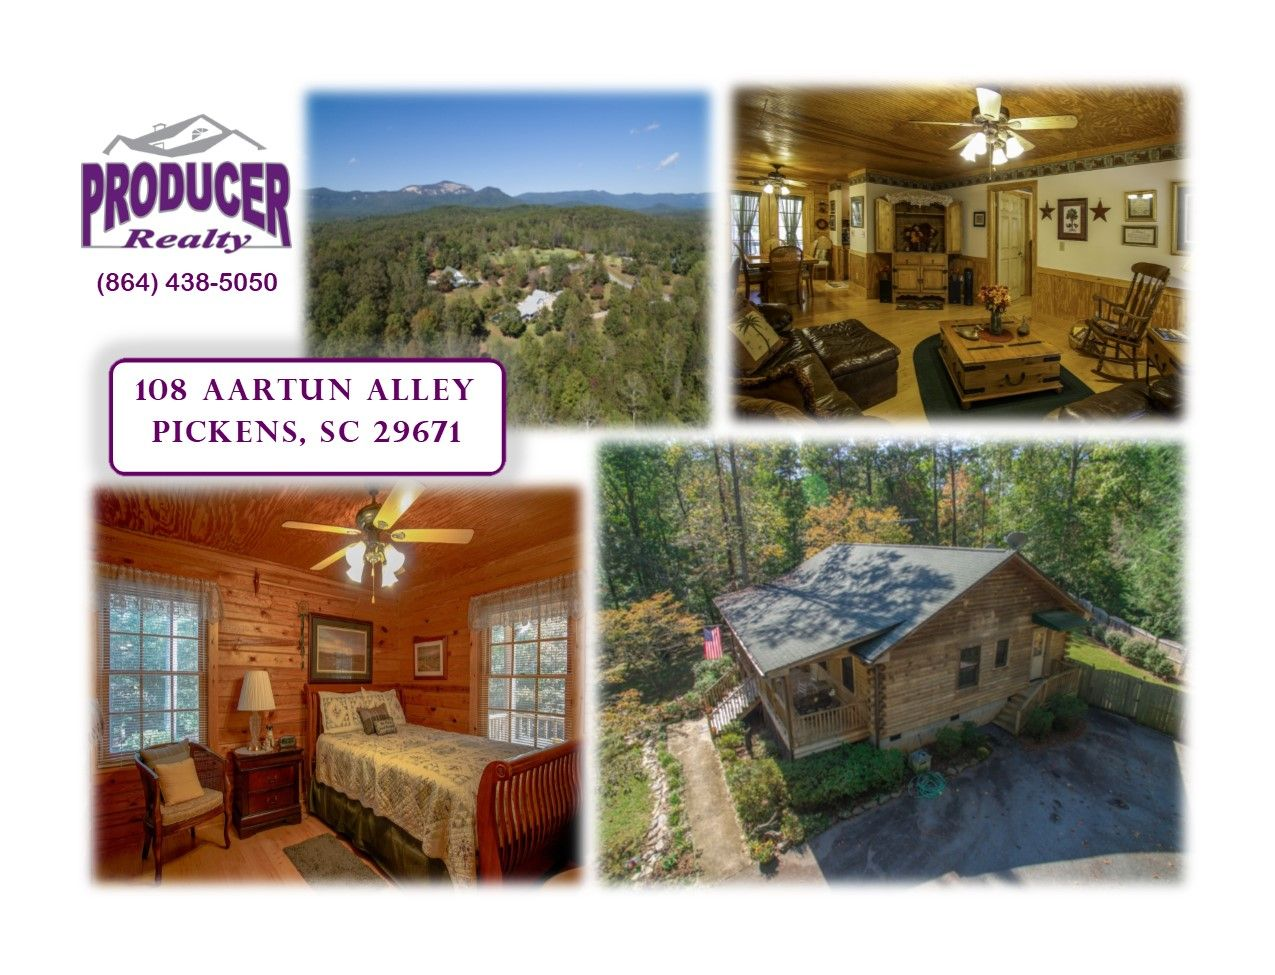 Beautiful Ranch Style Log Home At 108 Aartun Alley Pickens Sc 29671 This Home Is Situated On South Carolina Real Estate Table Rock State Park Rustic Retreat